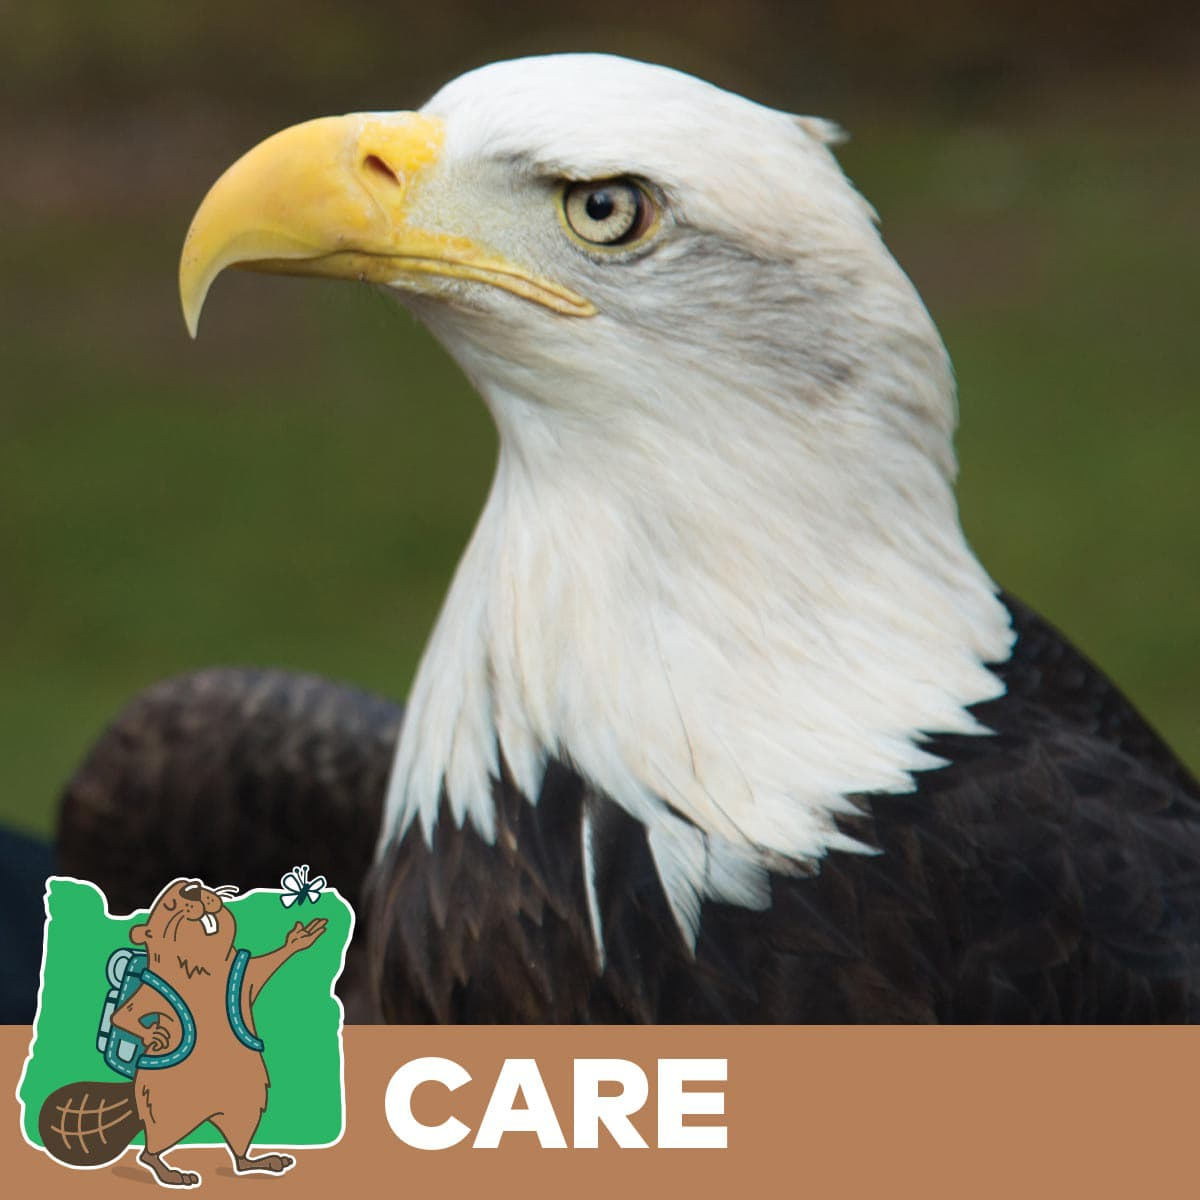 Head of bald eagle for Take Care Out There campaign